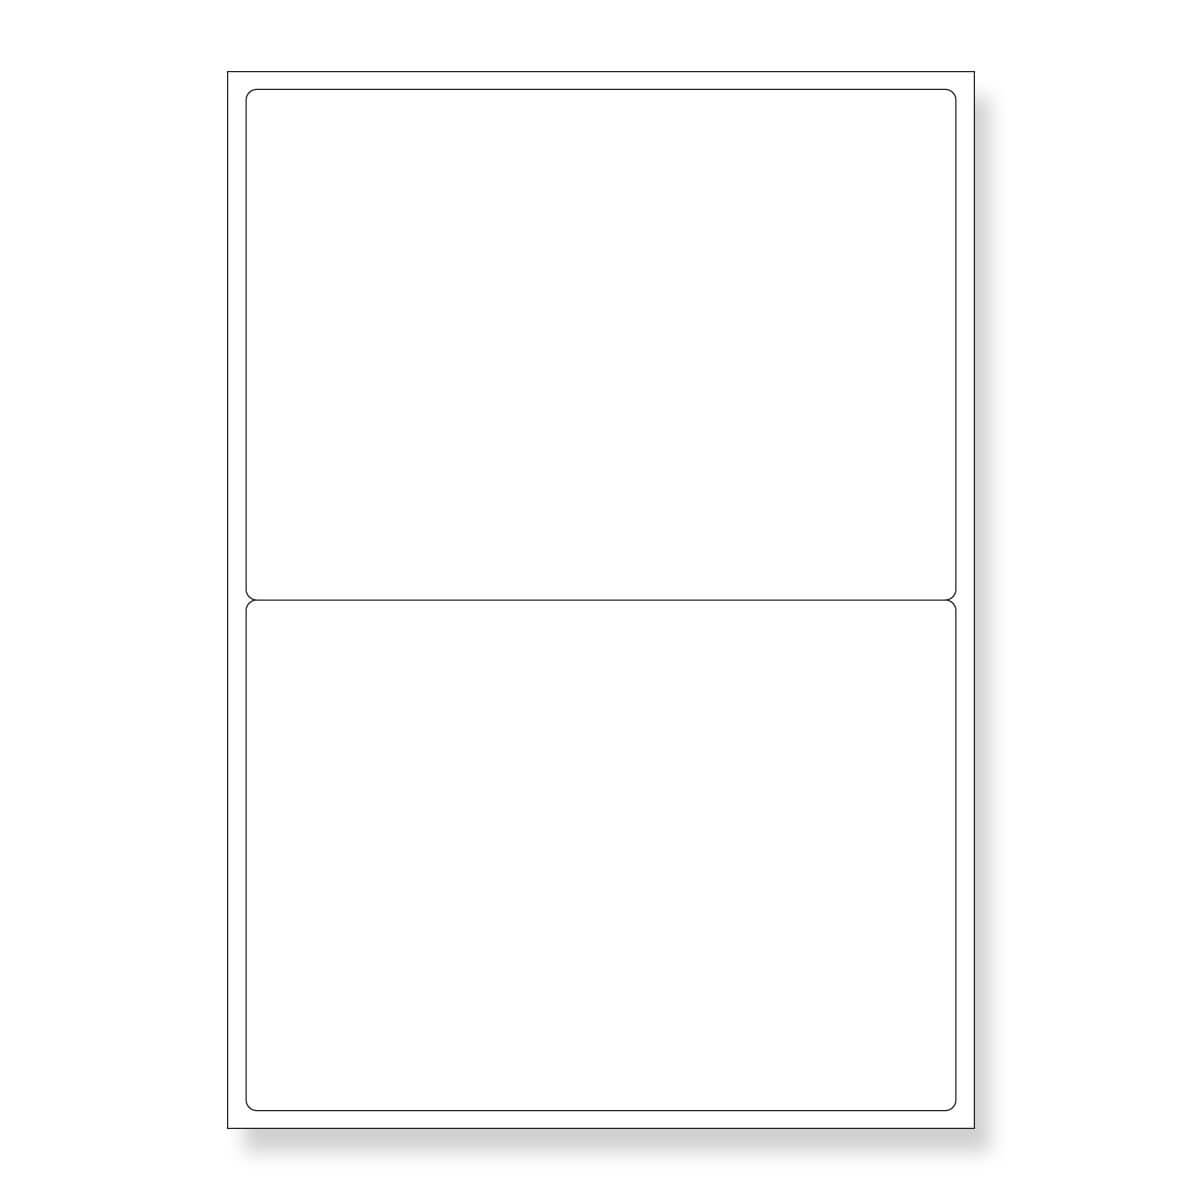 119.6mm x 143.5mm 2UP WHITE ADHESIVE LABELS